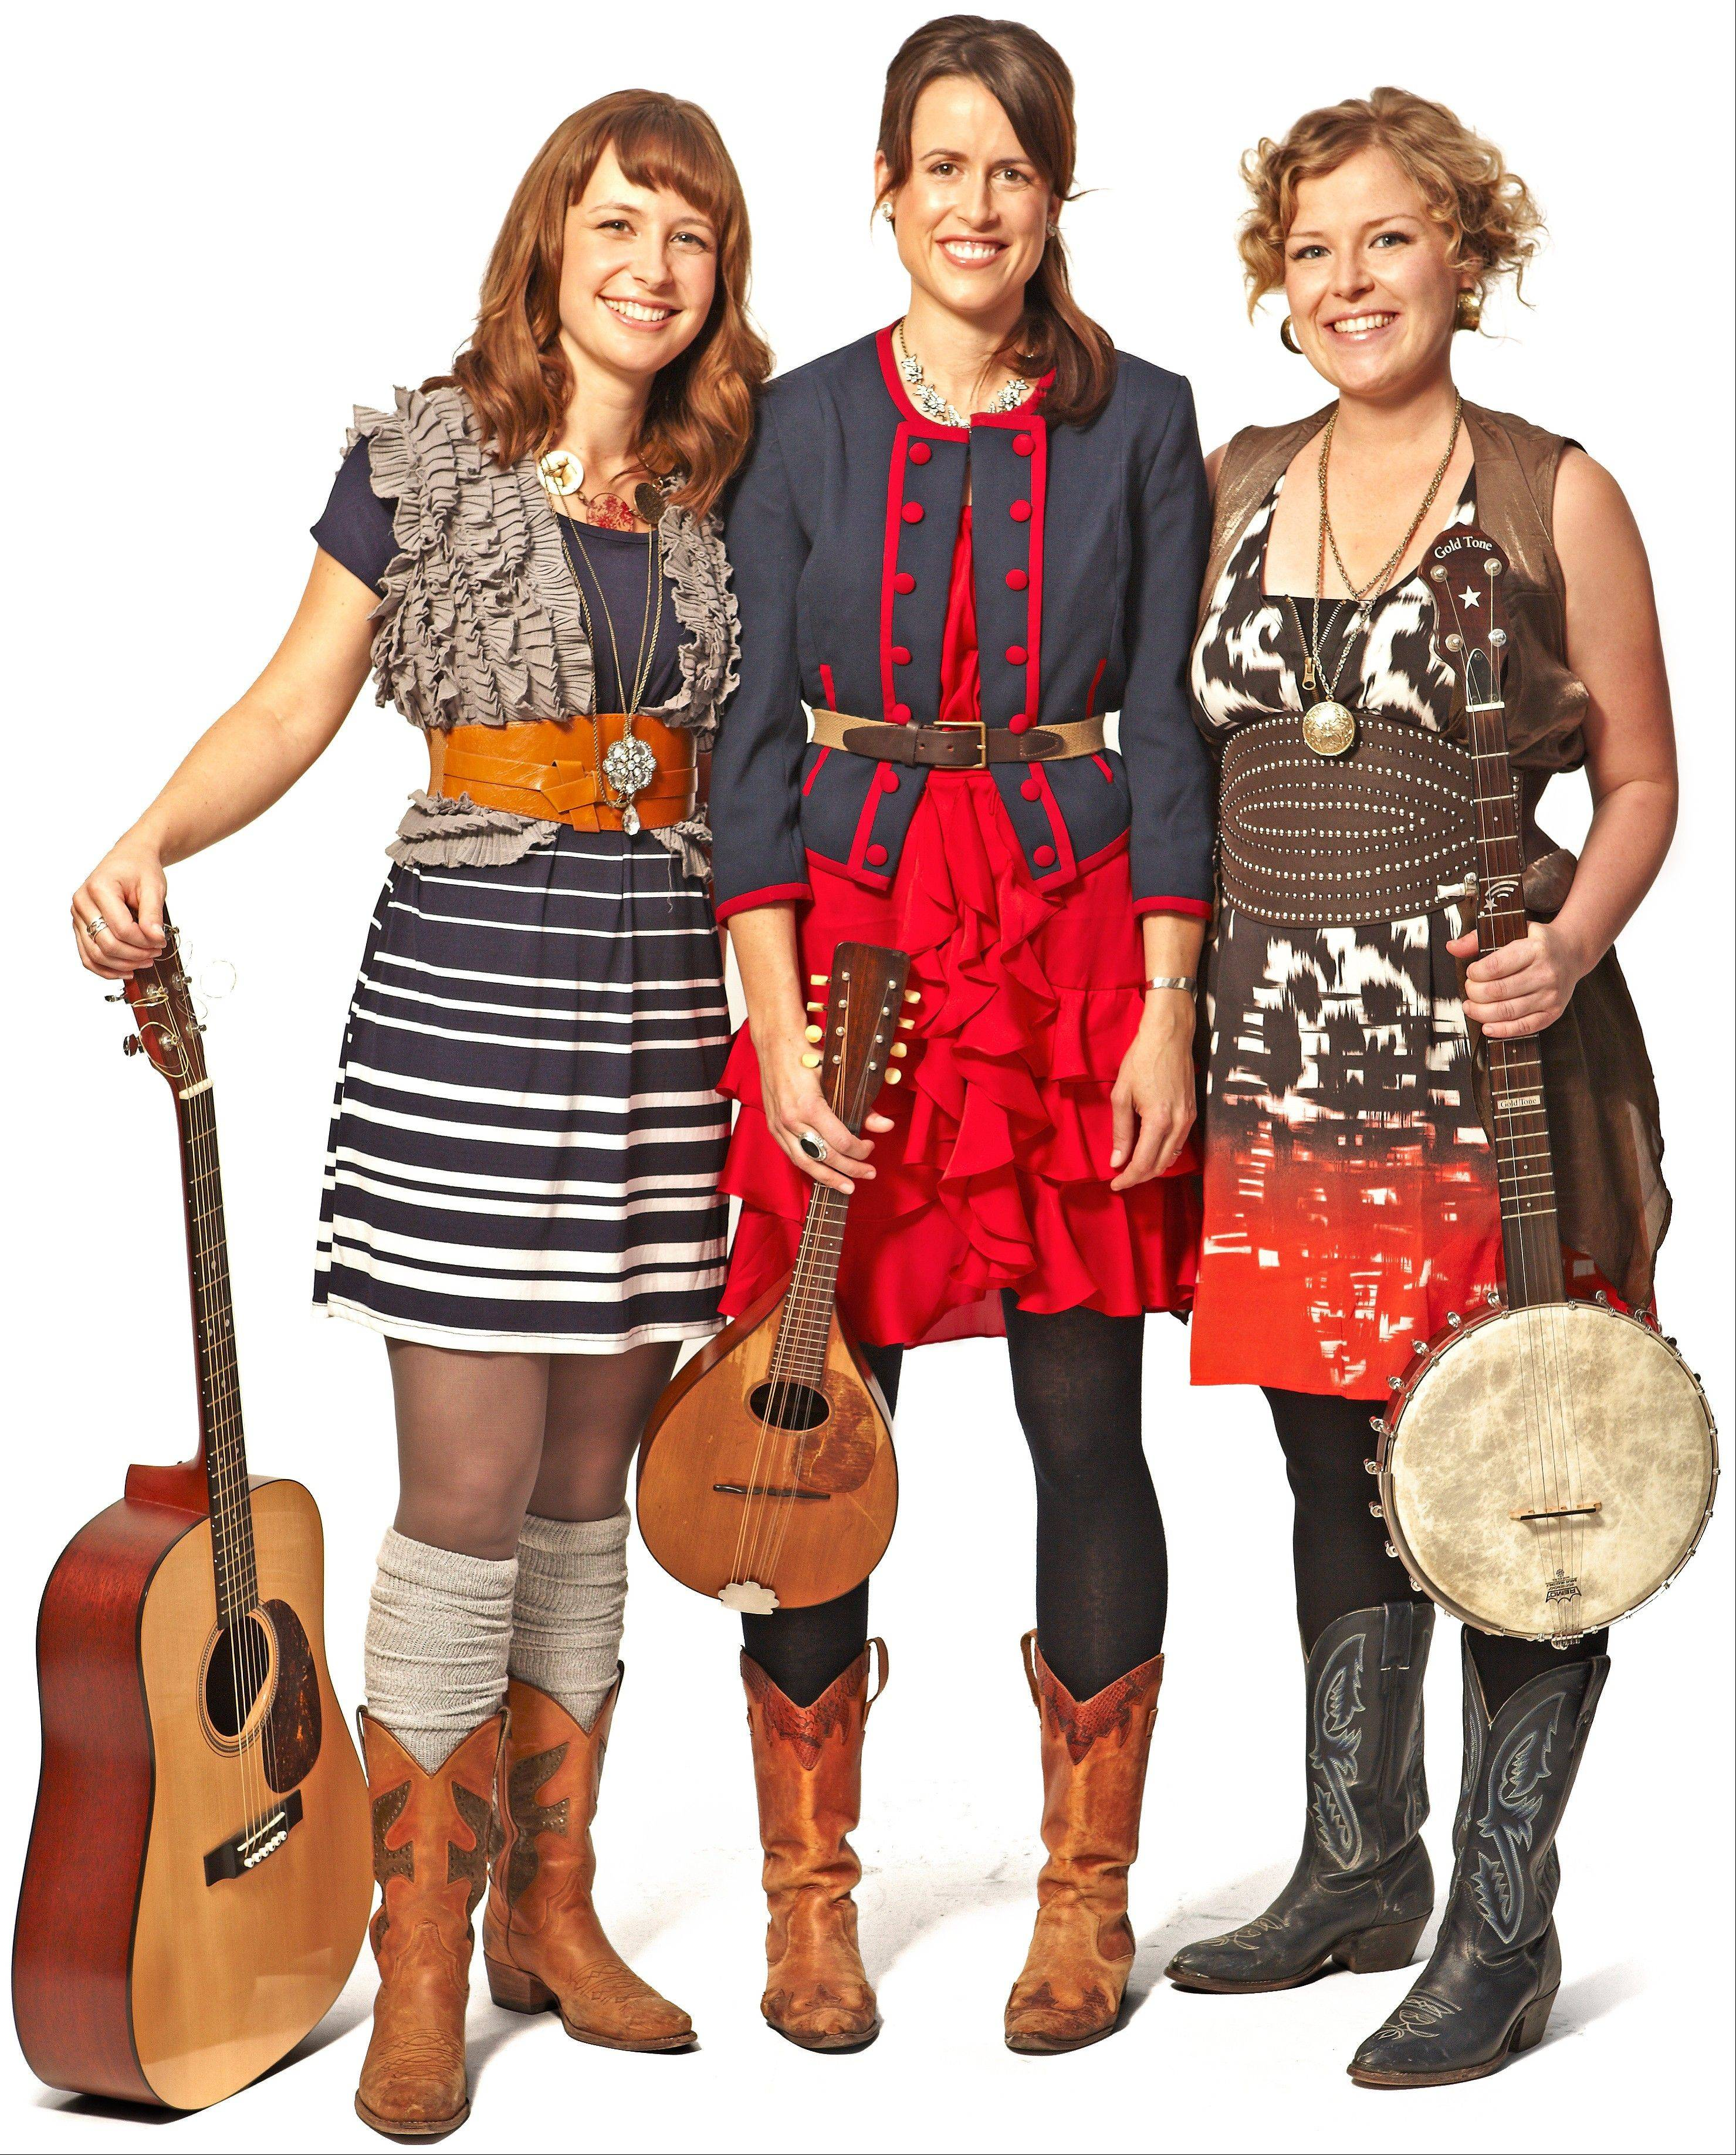 Canadian folk trio The Good Lovelies are set to perform at Ramsey Auditorium in Wilson Hall in Batavia on Saturday, Dec. 8.